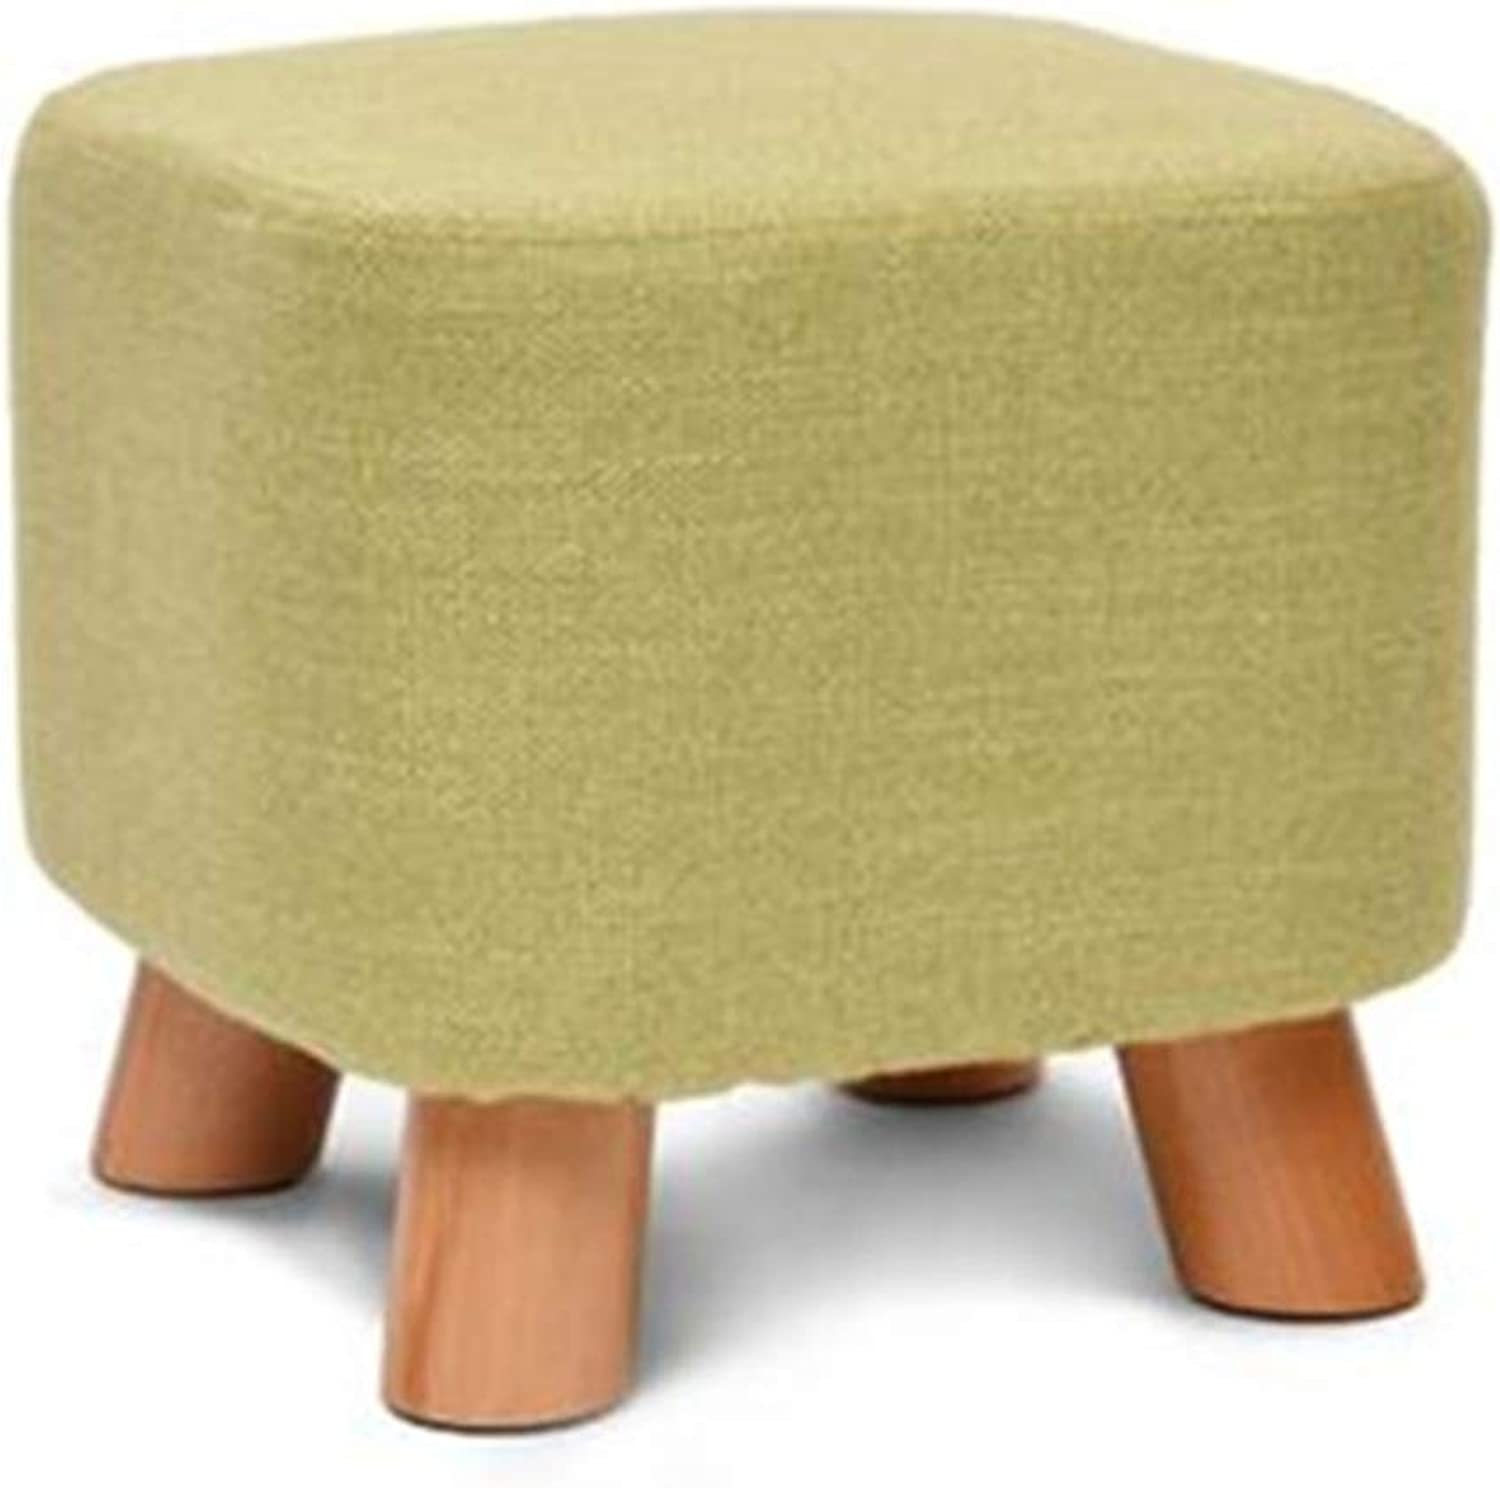 WEIYV-Barstools,bar Chair Solid Wood, Square Stool, Stool, Fabric, Home (color   Green, Size   17.5  28  7.5  25cm)